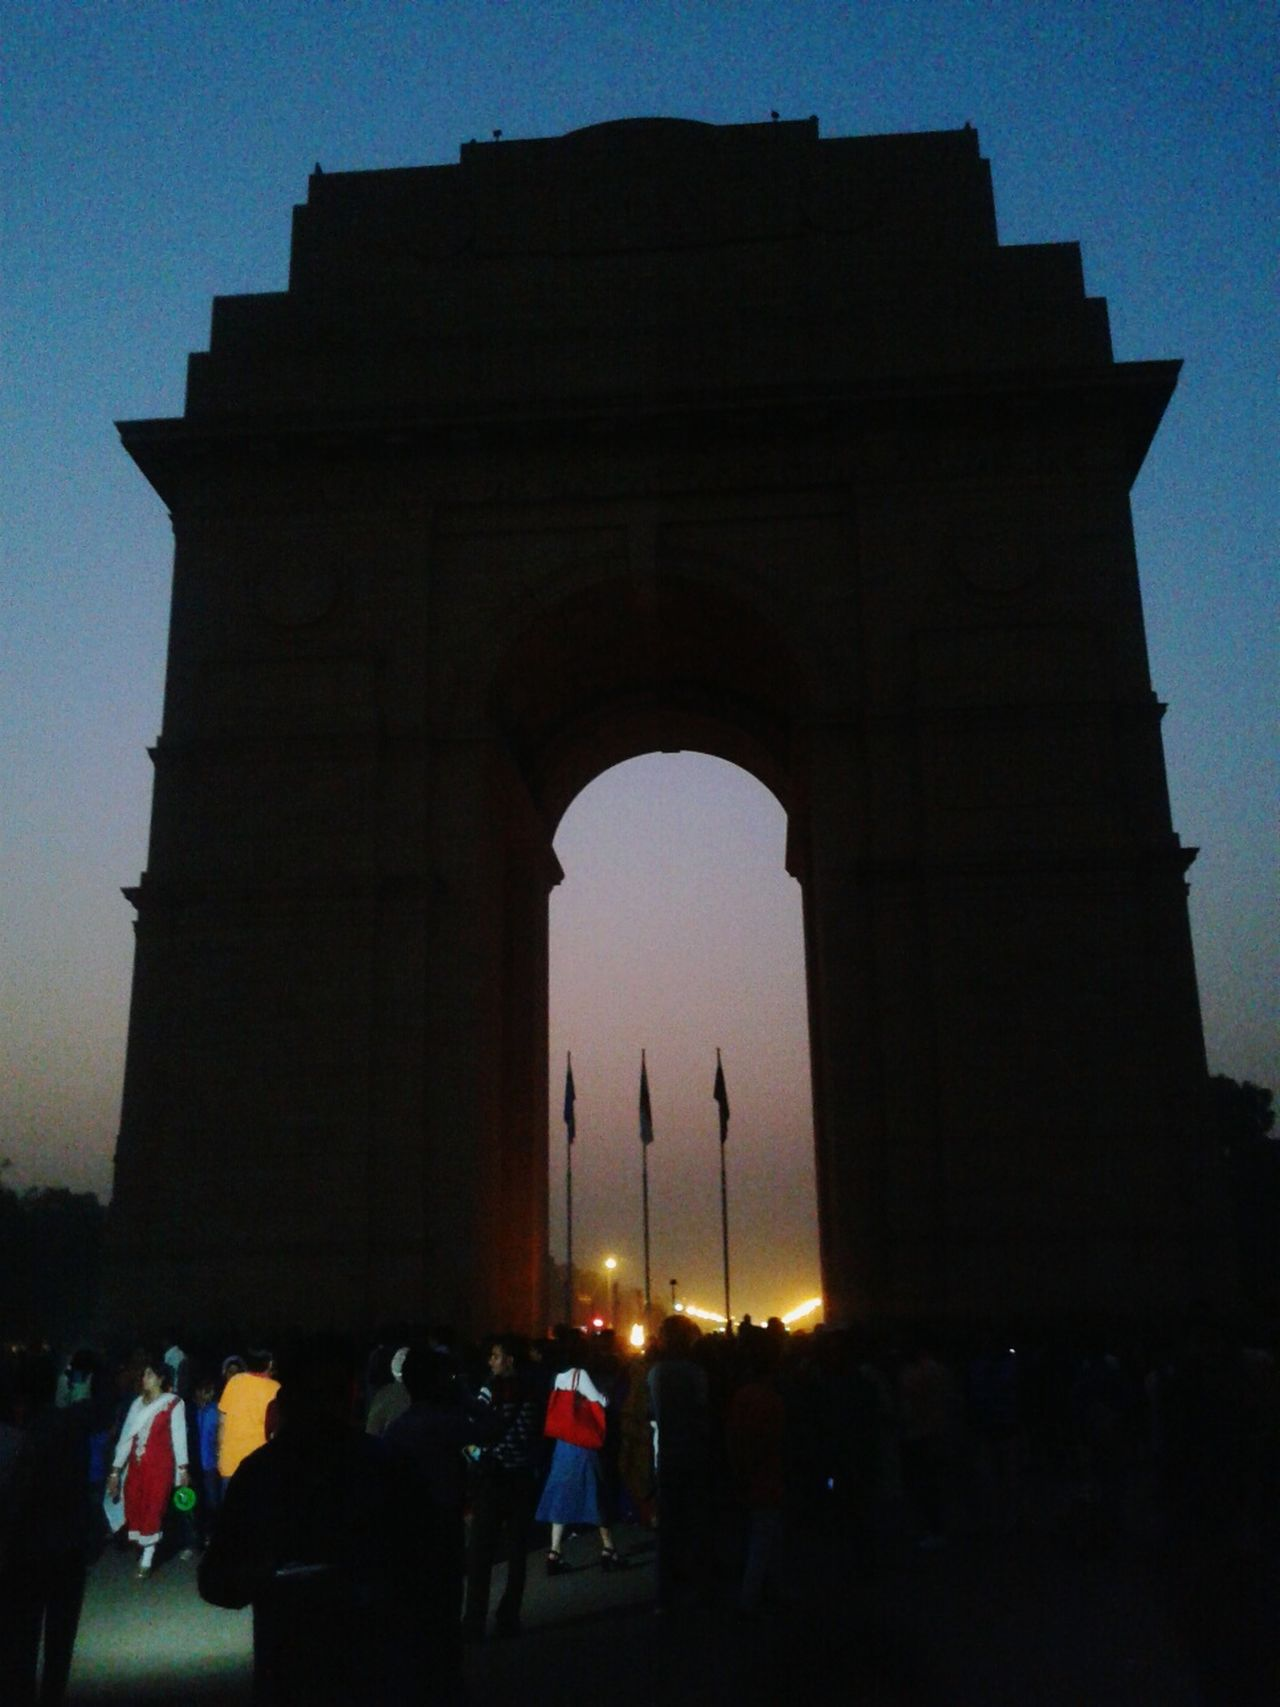 Night Photography Check This Out ☺☺☺🌃🌉 India Gate In Delhi India 😚